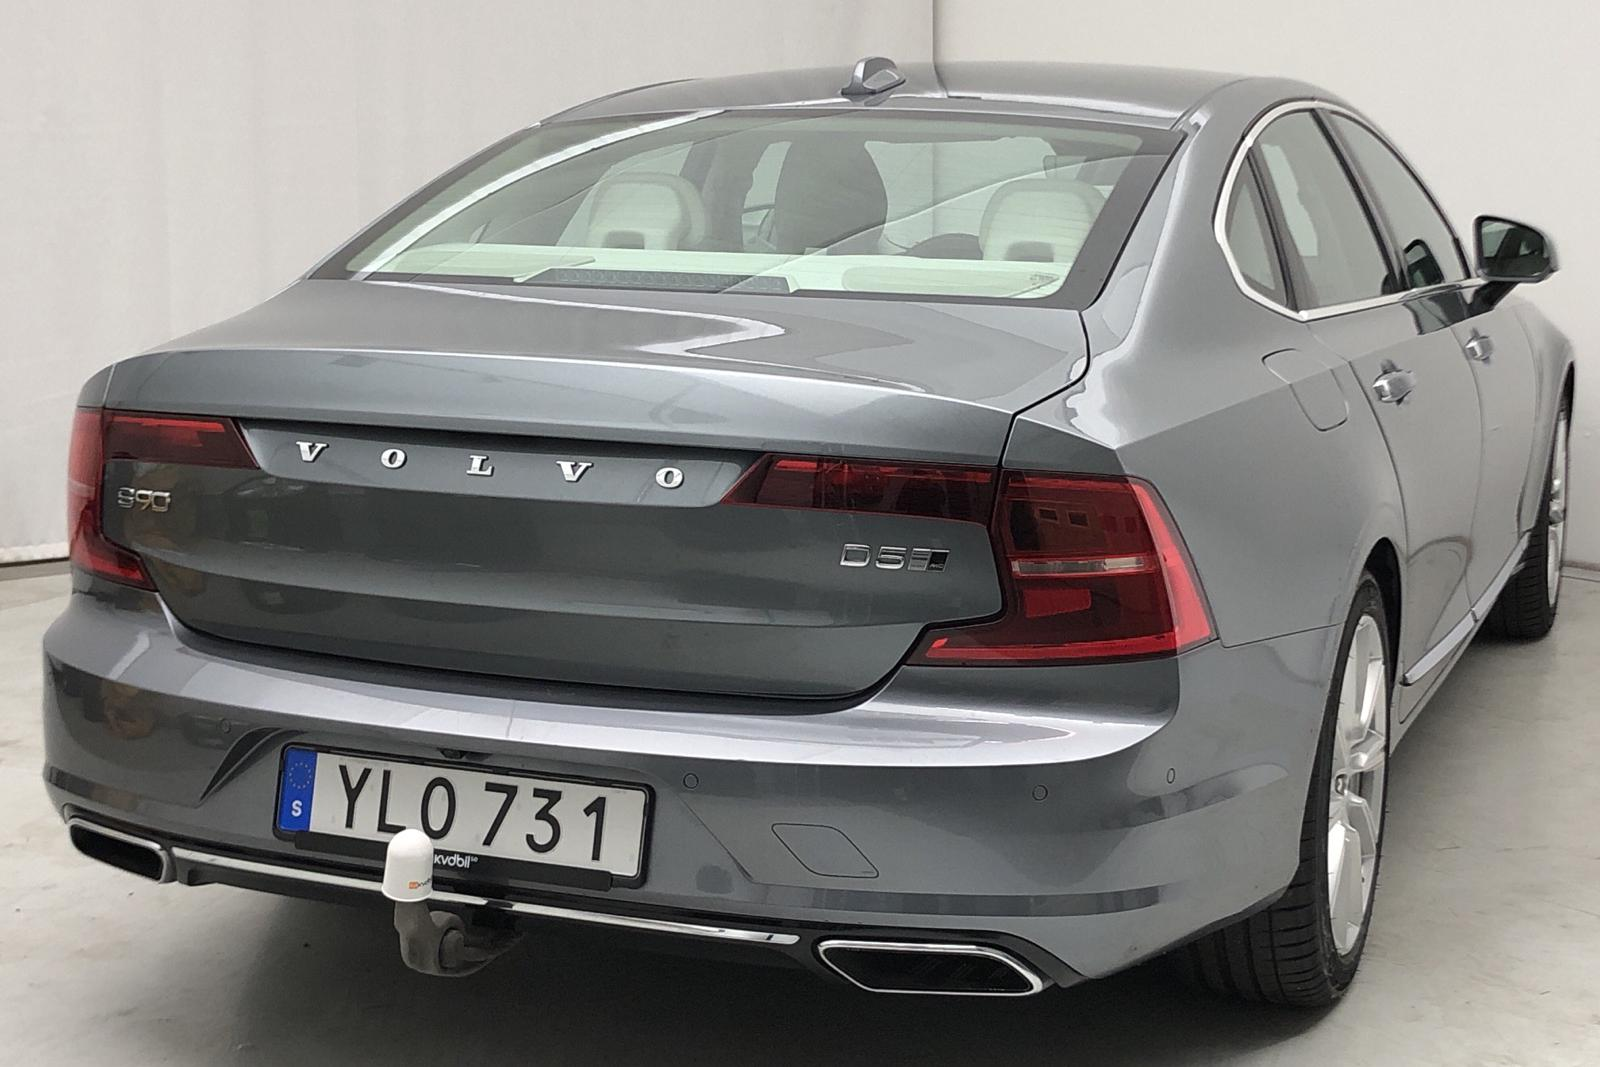 Volvo S90 D5 AWD (235hk) - 87 288 km - Automatic - gray - 2017